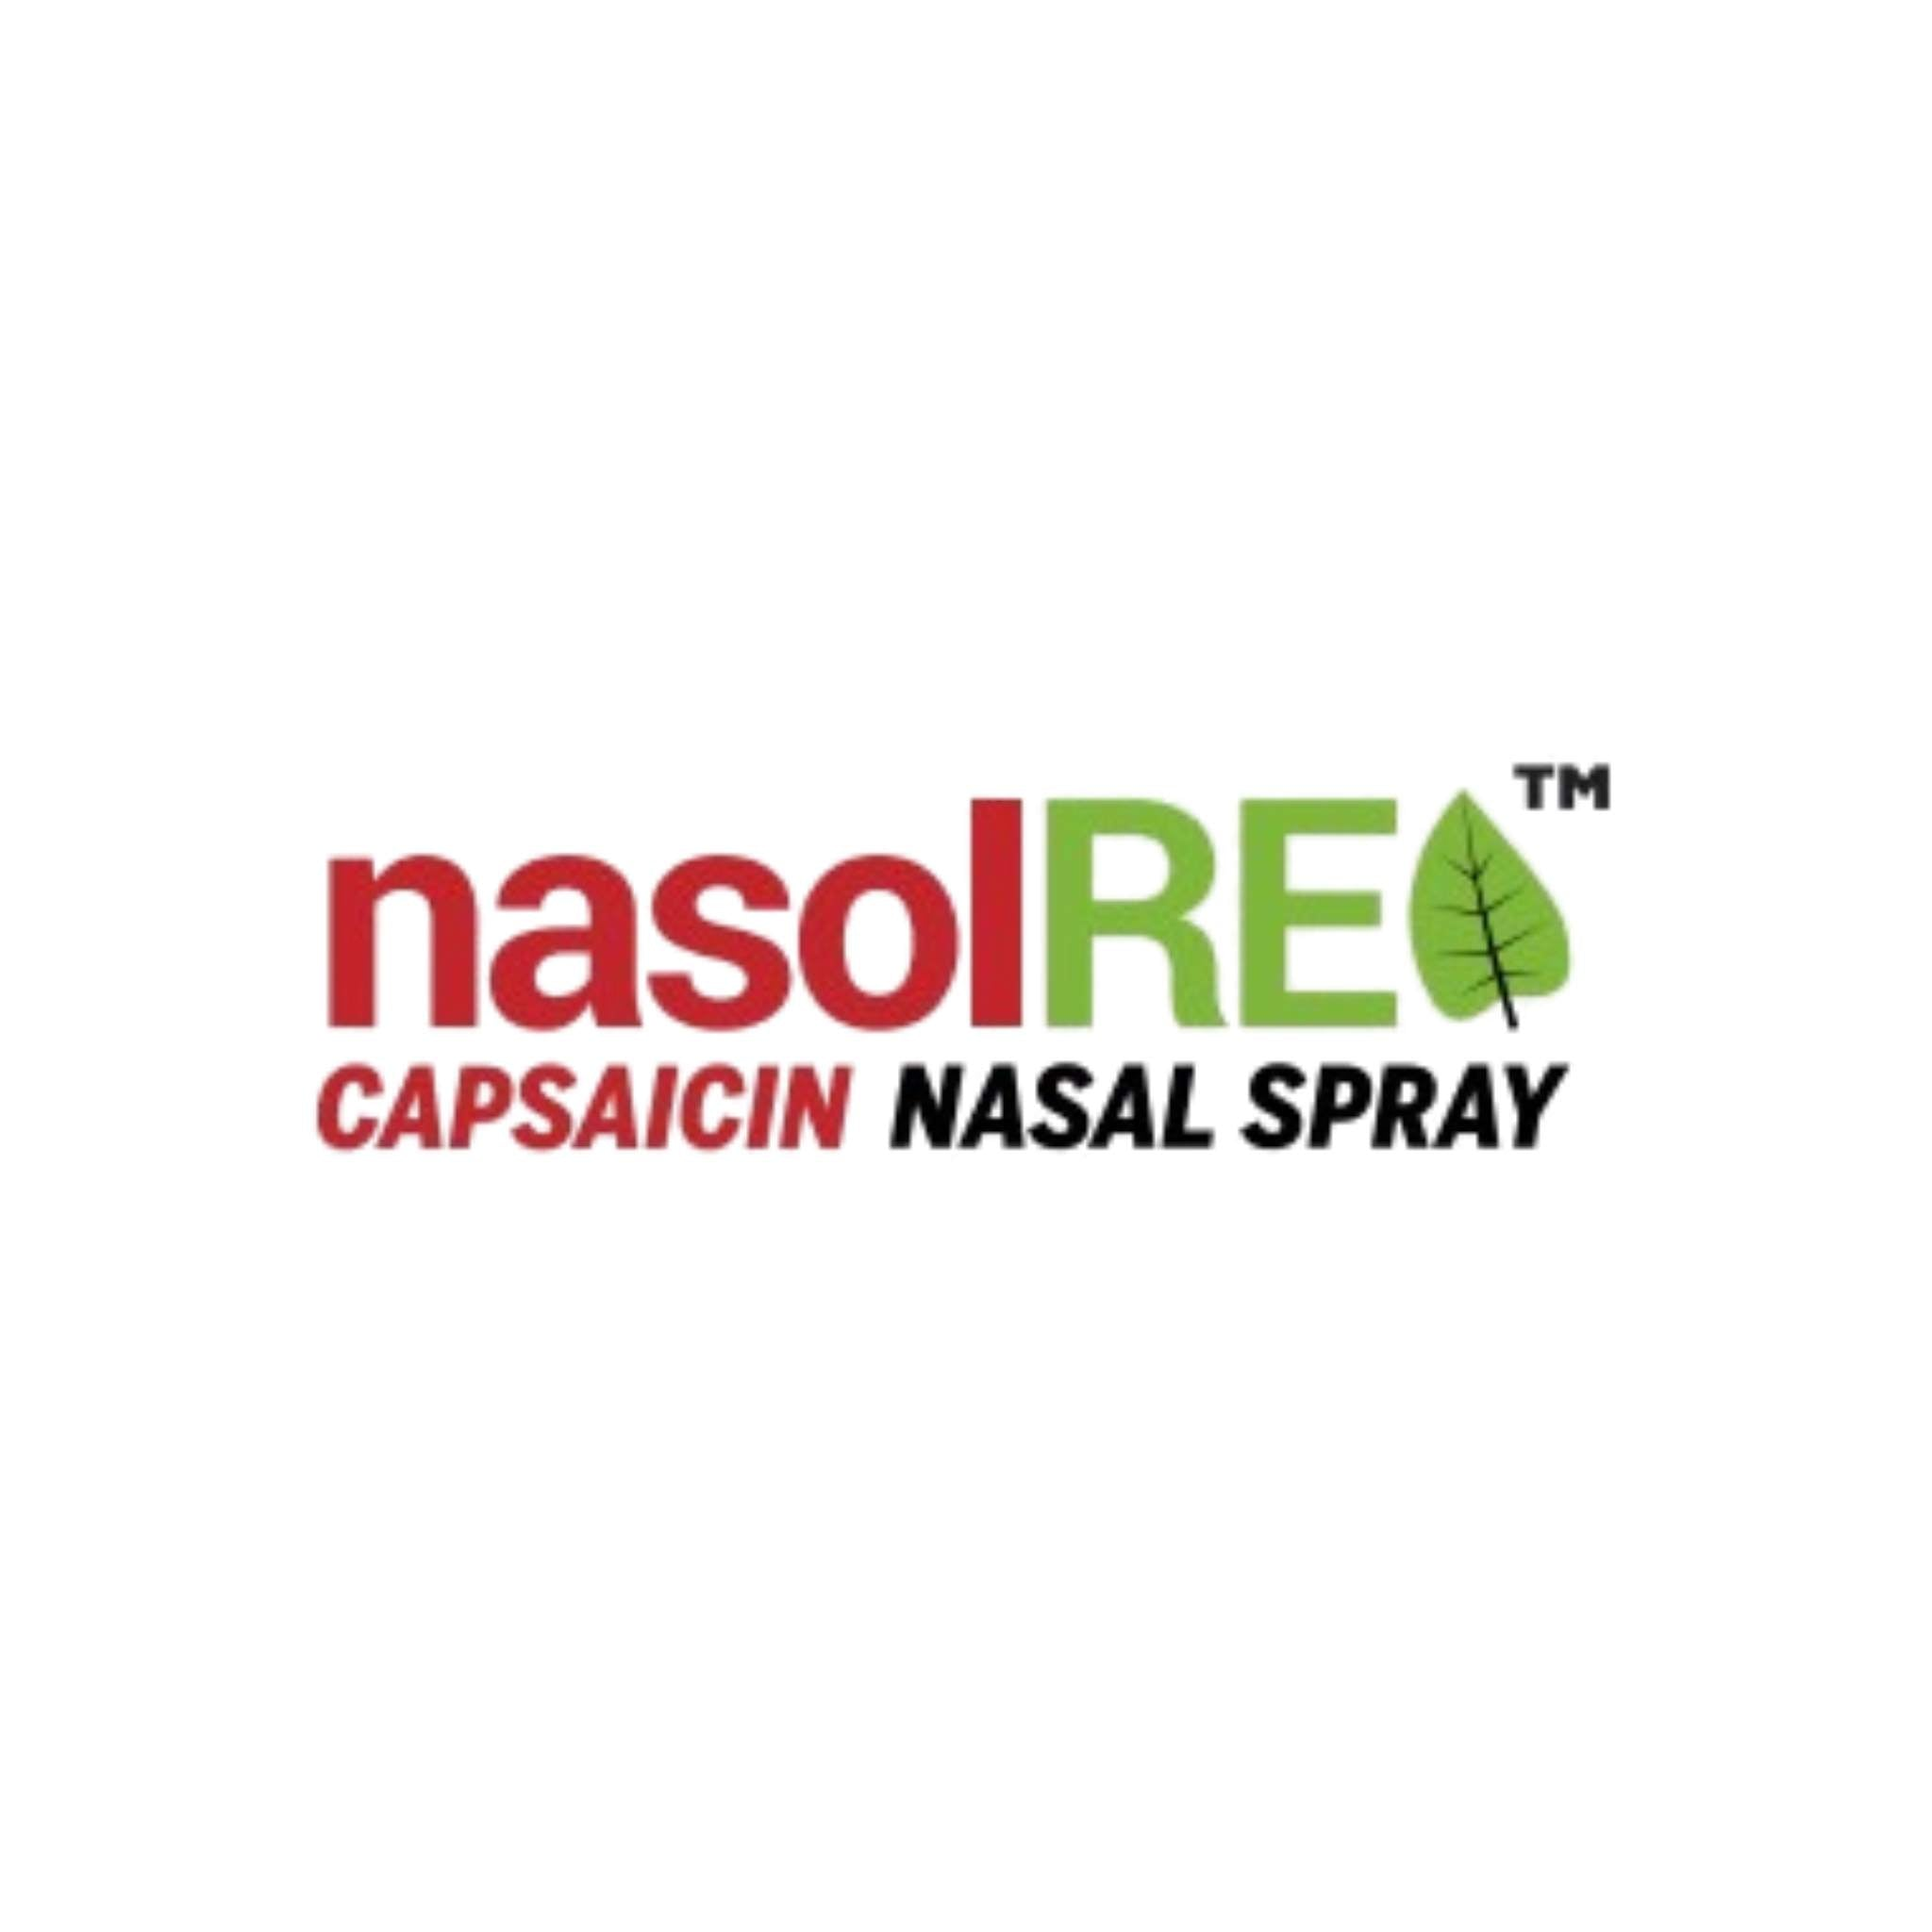 NasolRE Logo, Team Perfect